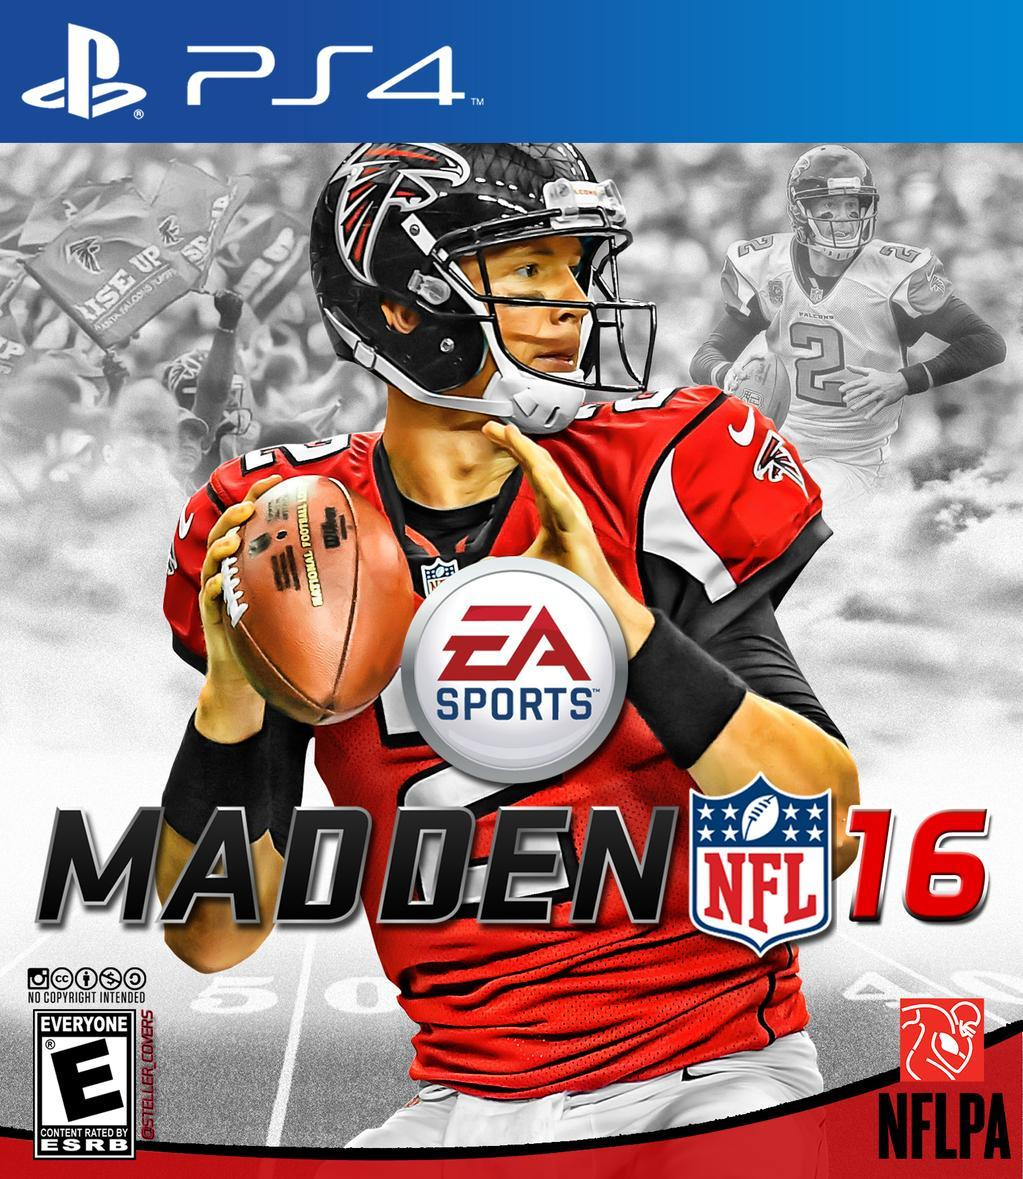 Madden 16 Covers - Page 6 of 8 - @NFLRT